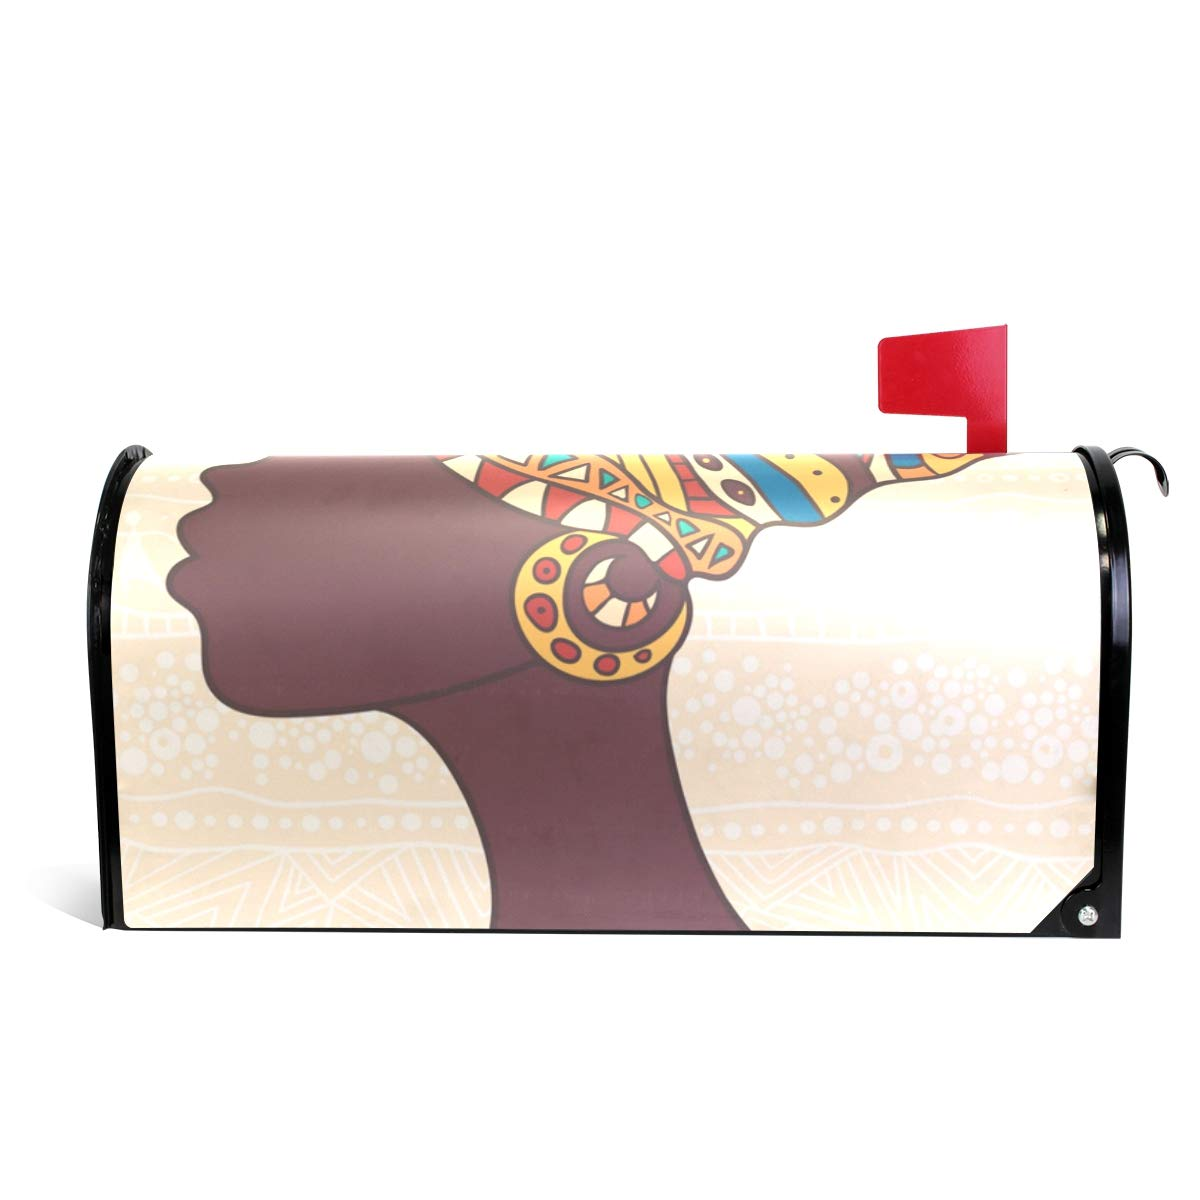 ALAZA African Woman Magnetic Mailbox Cover Oversized-25.5'' x20.8